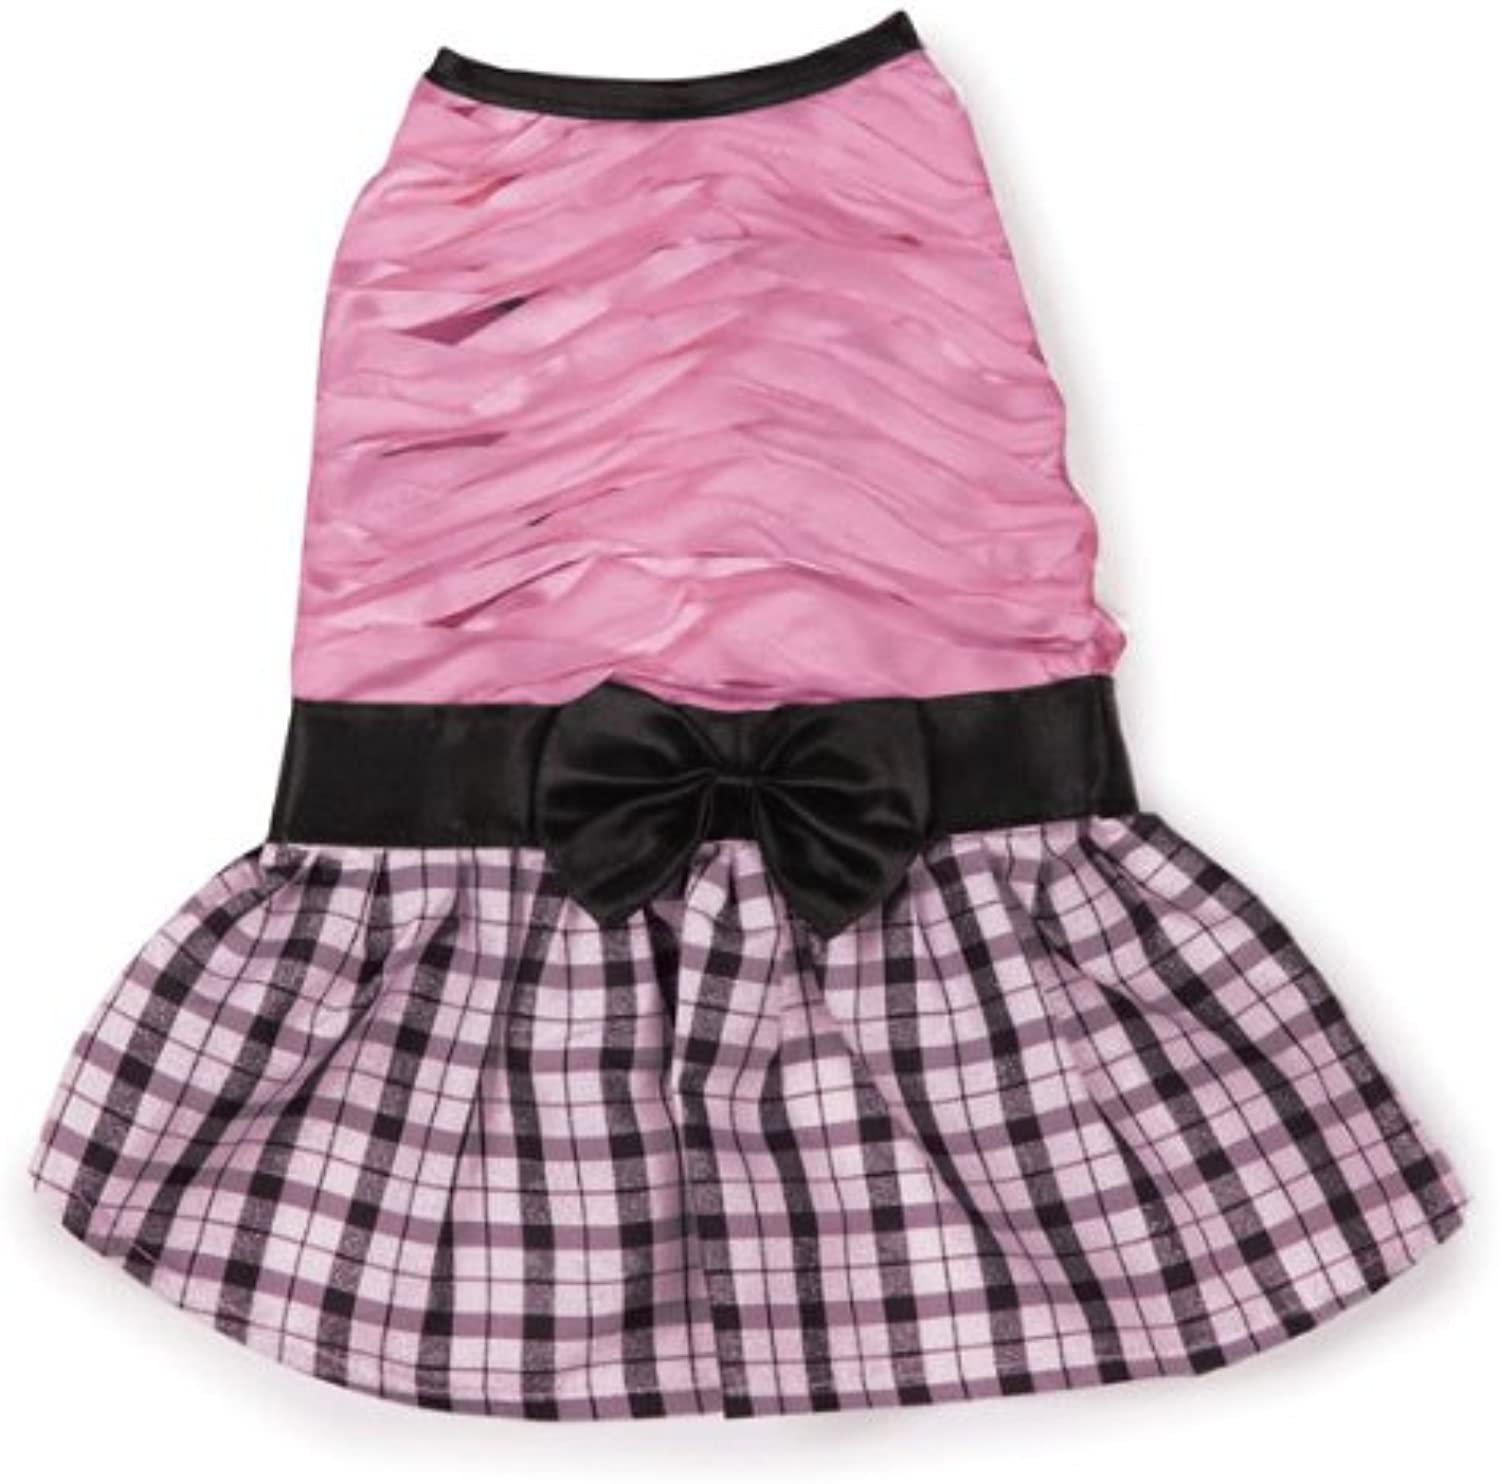 East Side Collection Polyester The First Lady Ruffle Taffeta Dog Dress, XXSmall, 8Inch, Pink